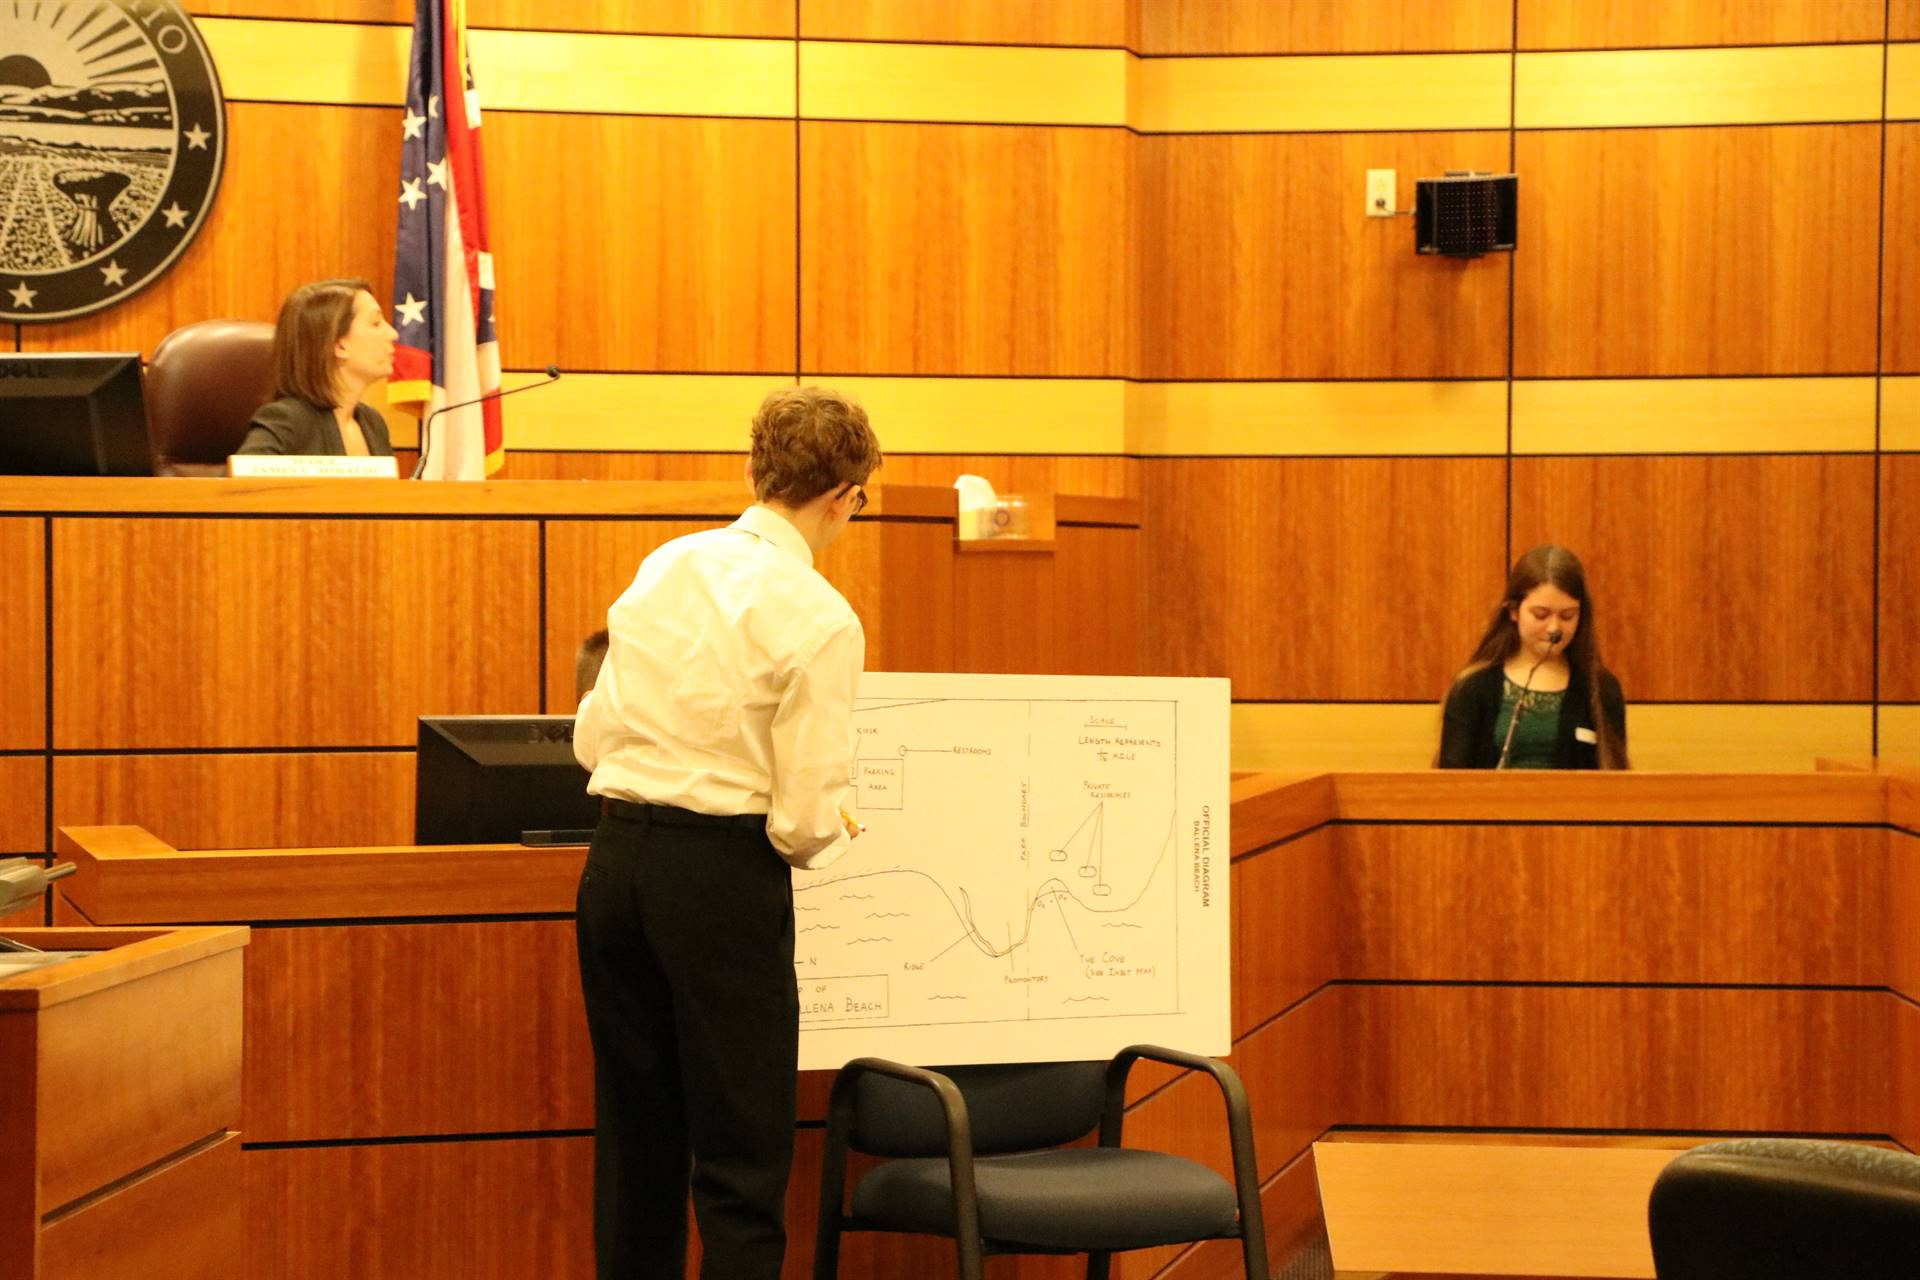 boy writing on poster diagram in court room